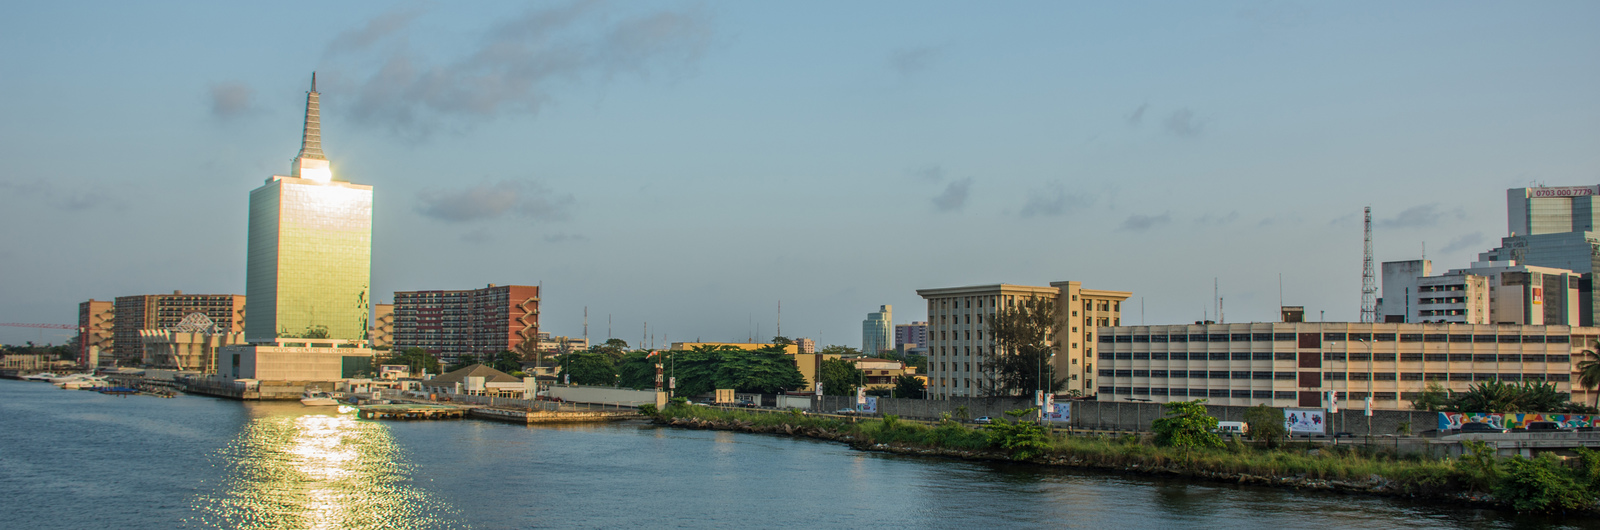 lagos city header